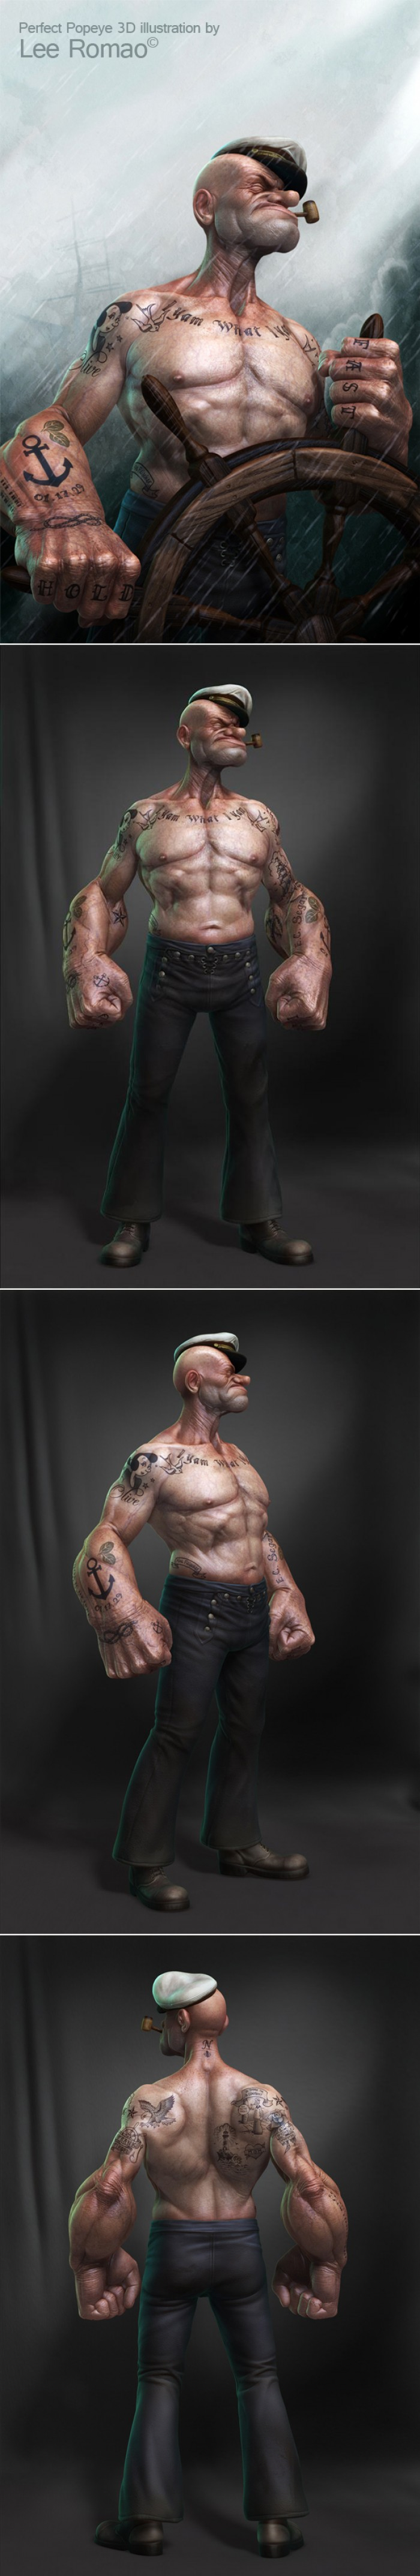 The Coolest Popeye 3D Illustration by Lee Romao